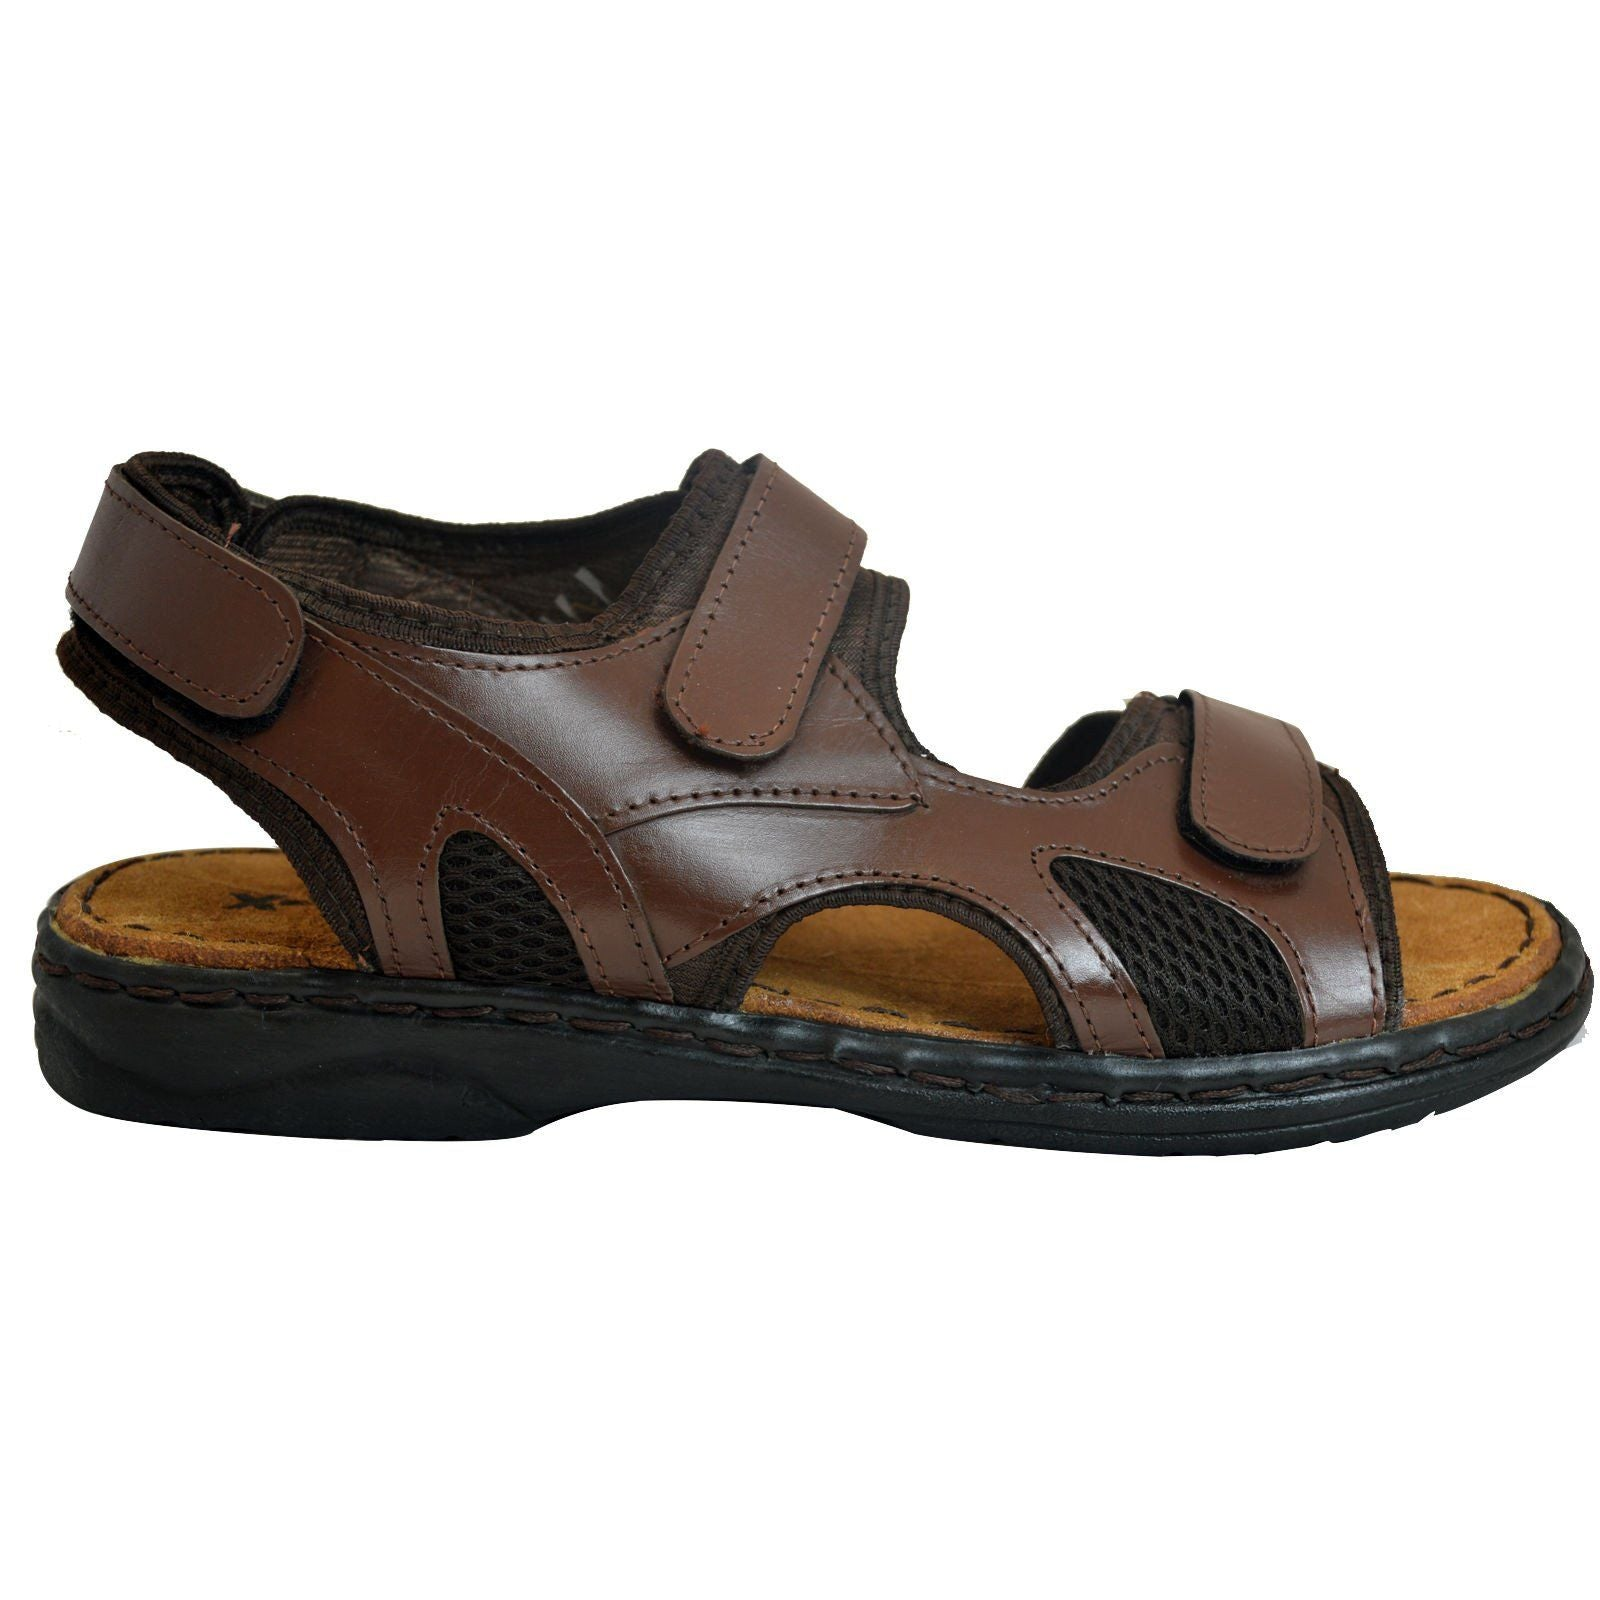 fd5aa420b5c Mens Summer Sandals Leather Velcro Strap Gladiator Beach Mules - Xelay